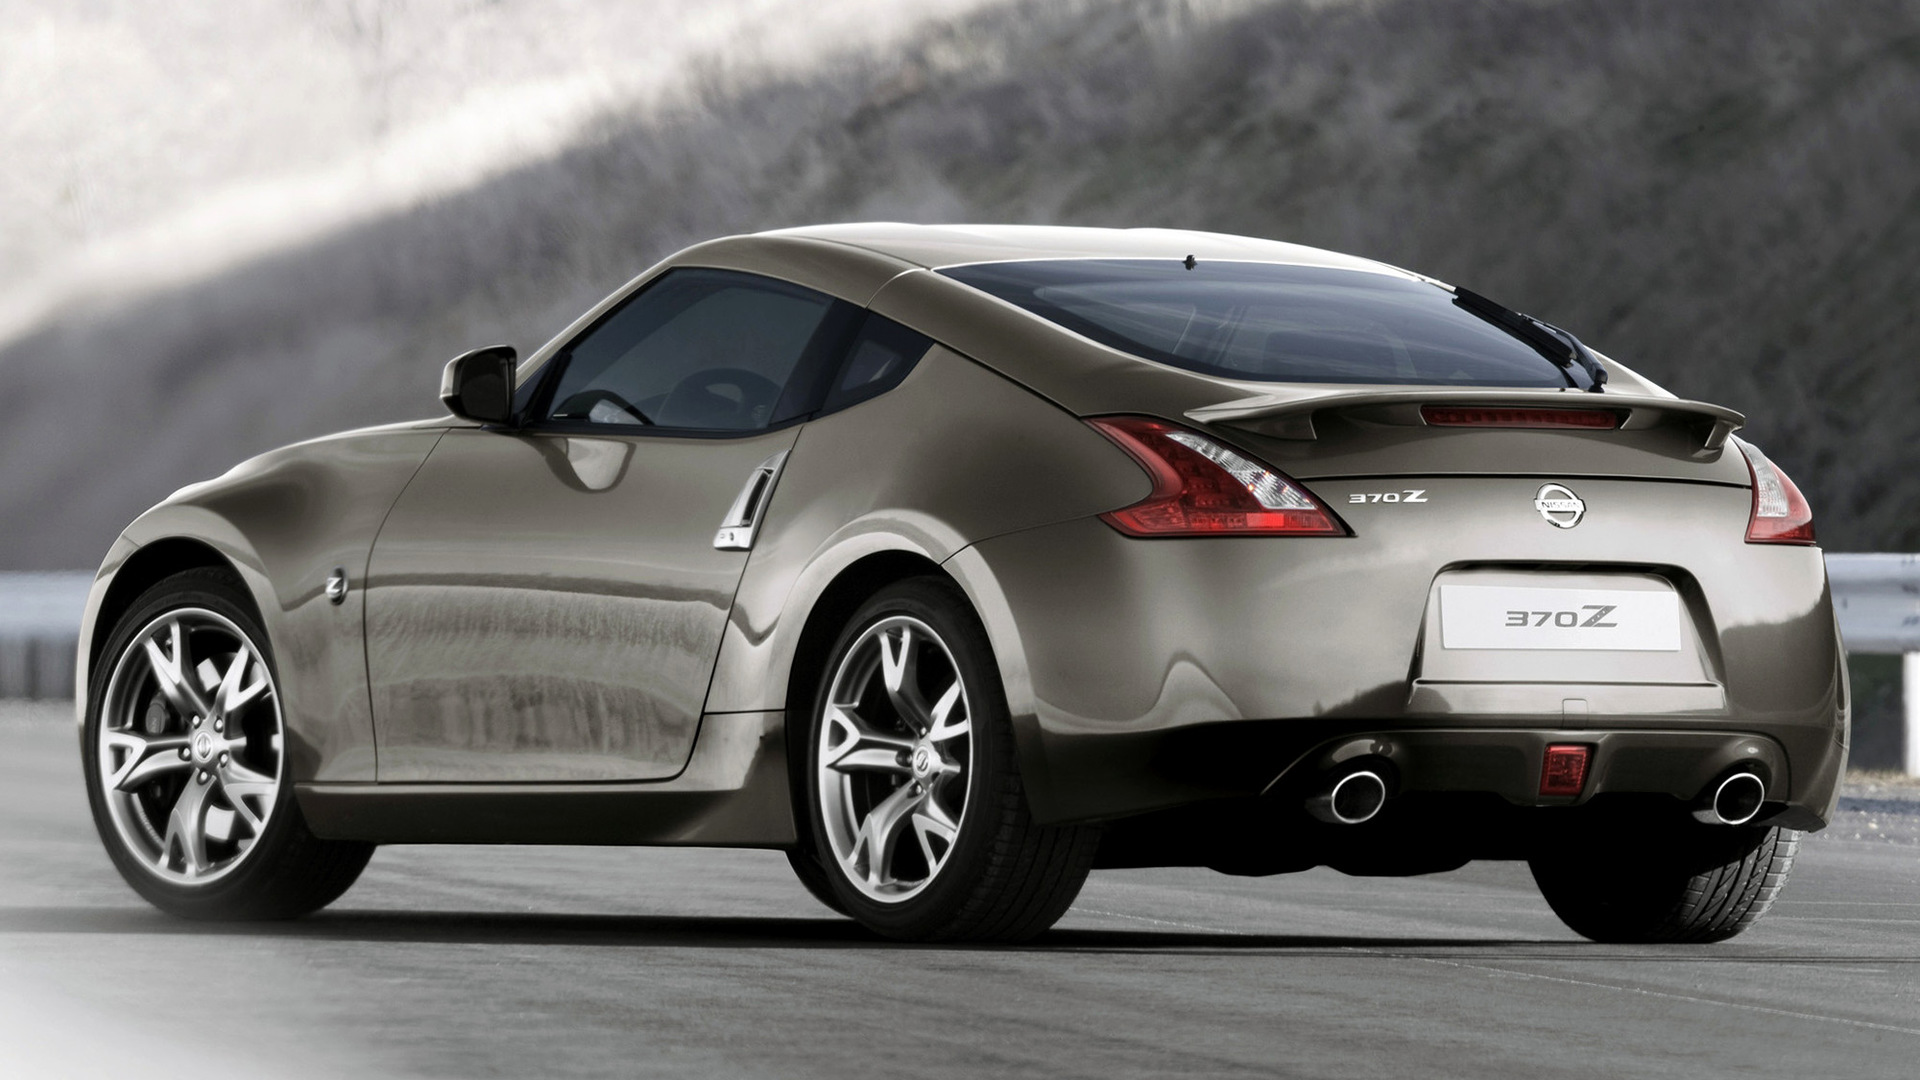 Nissan 370Z Nismo >> 2009 Nissan 370Z - Wallpapers and HD Images | Car Pixel